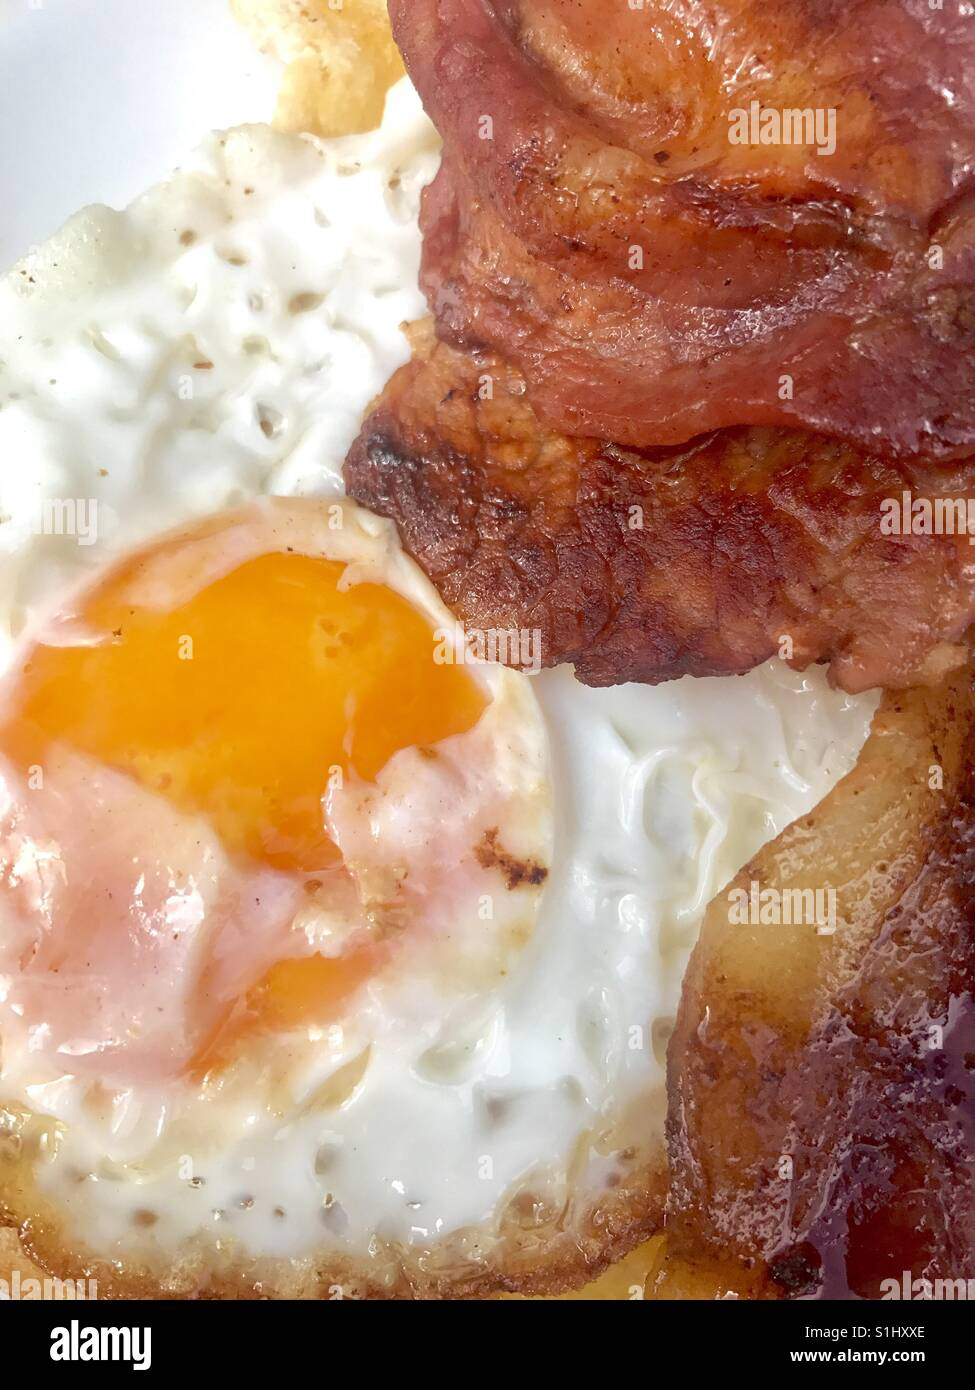 Fried egg and bacon - Stock Image